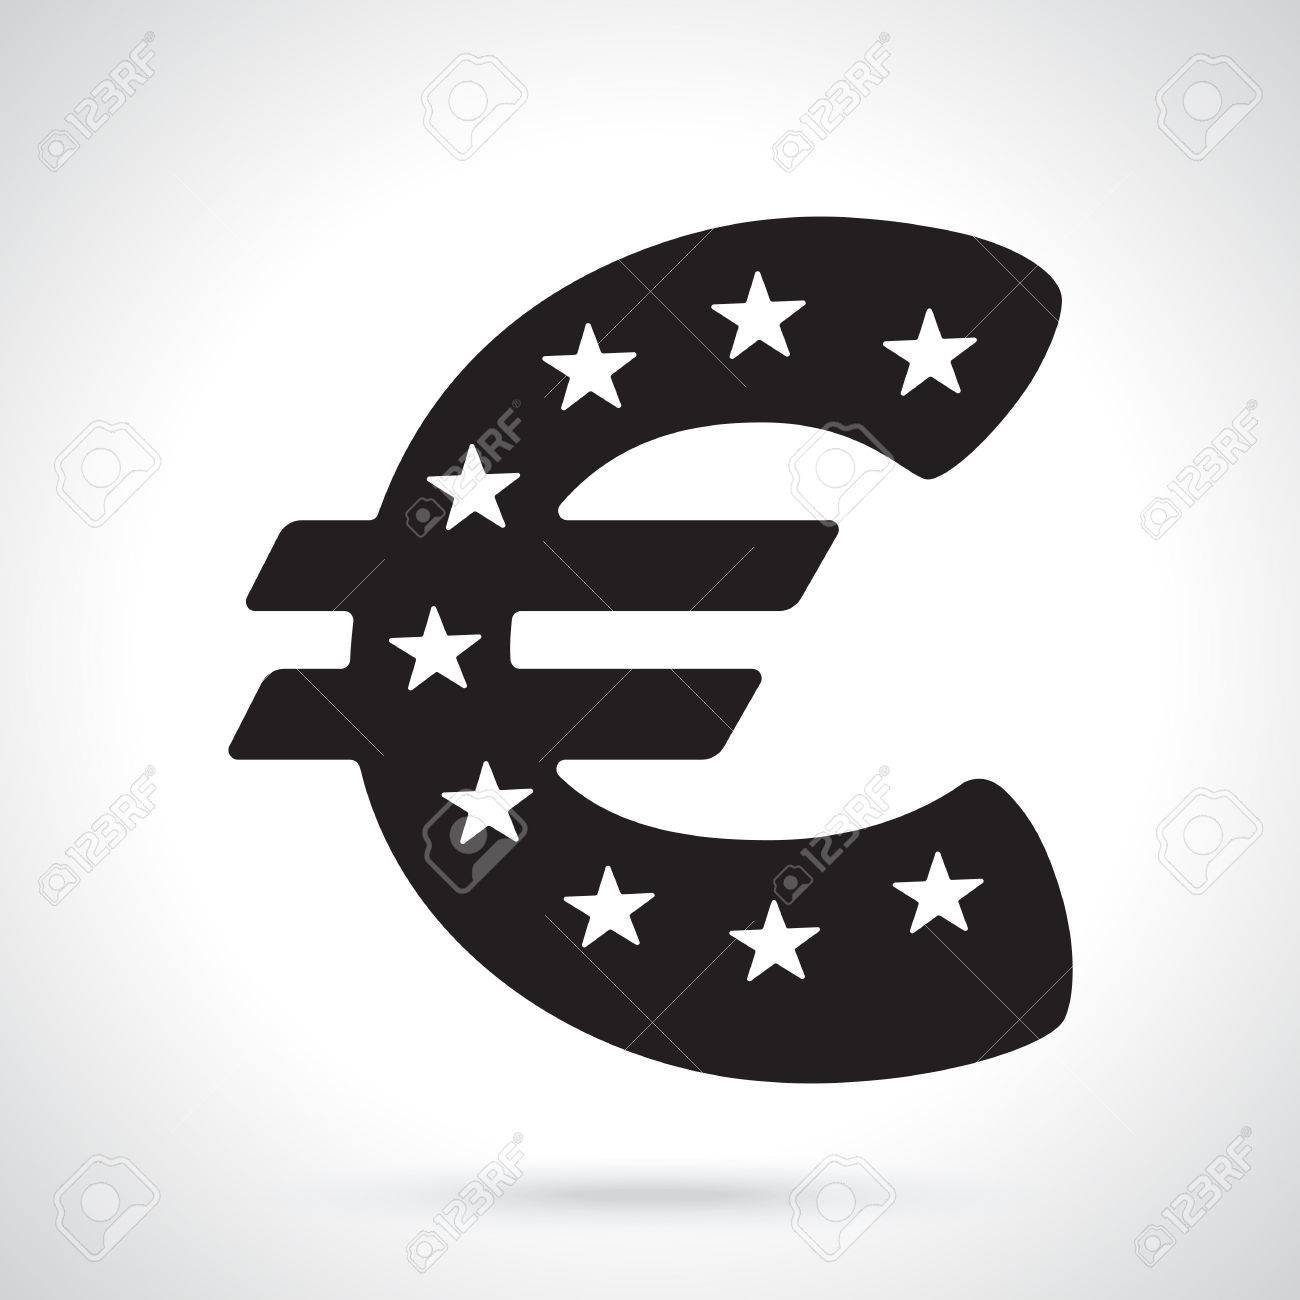 Vector illustration silhouette of euro sign with stars the silhouette of euro sign with stars the symbol of world currencies biocorpaavc